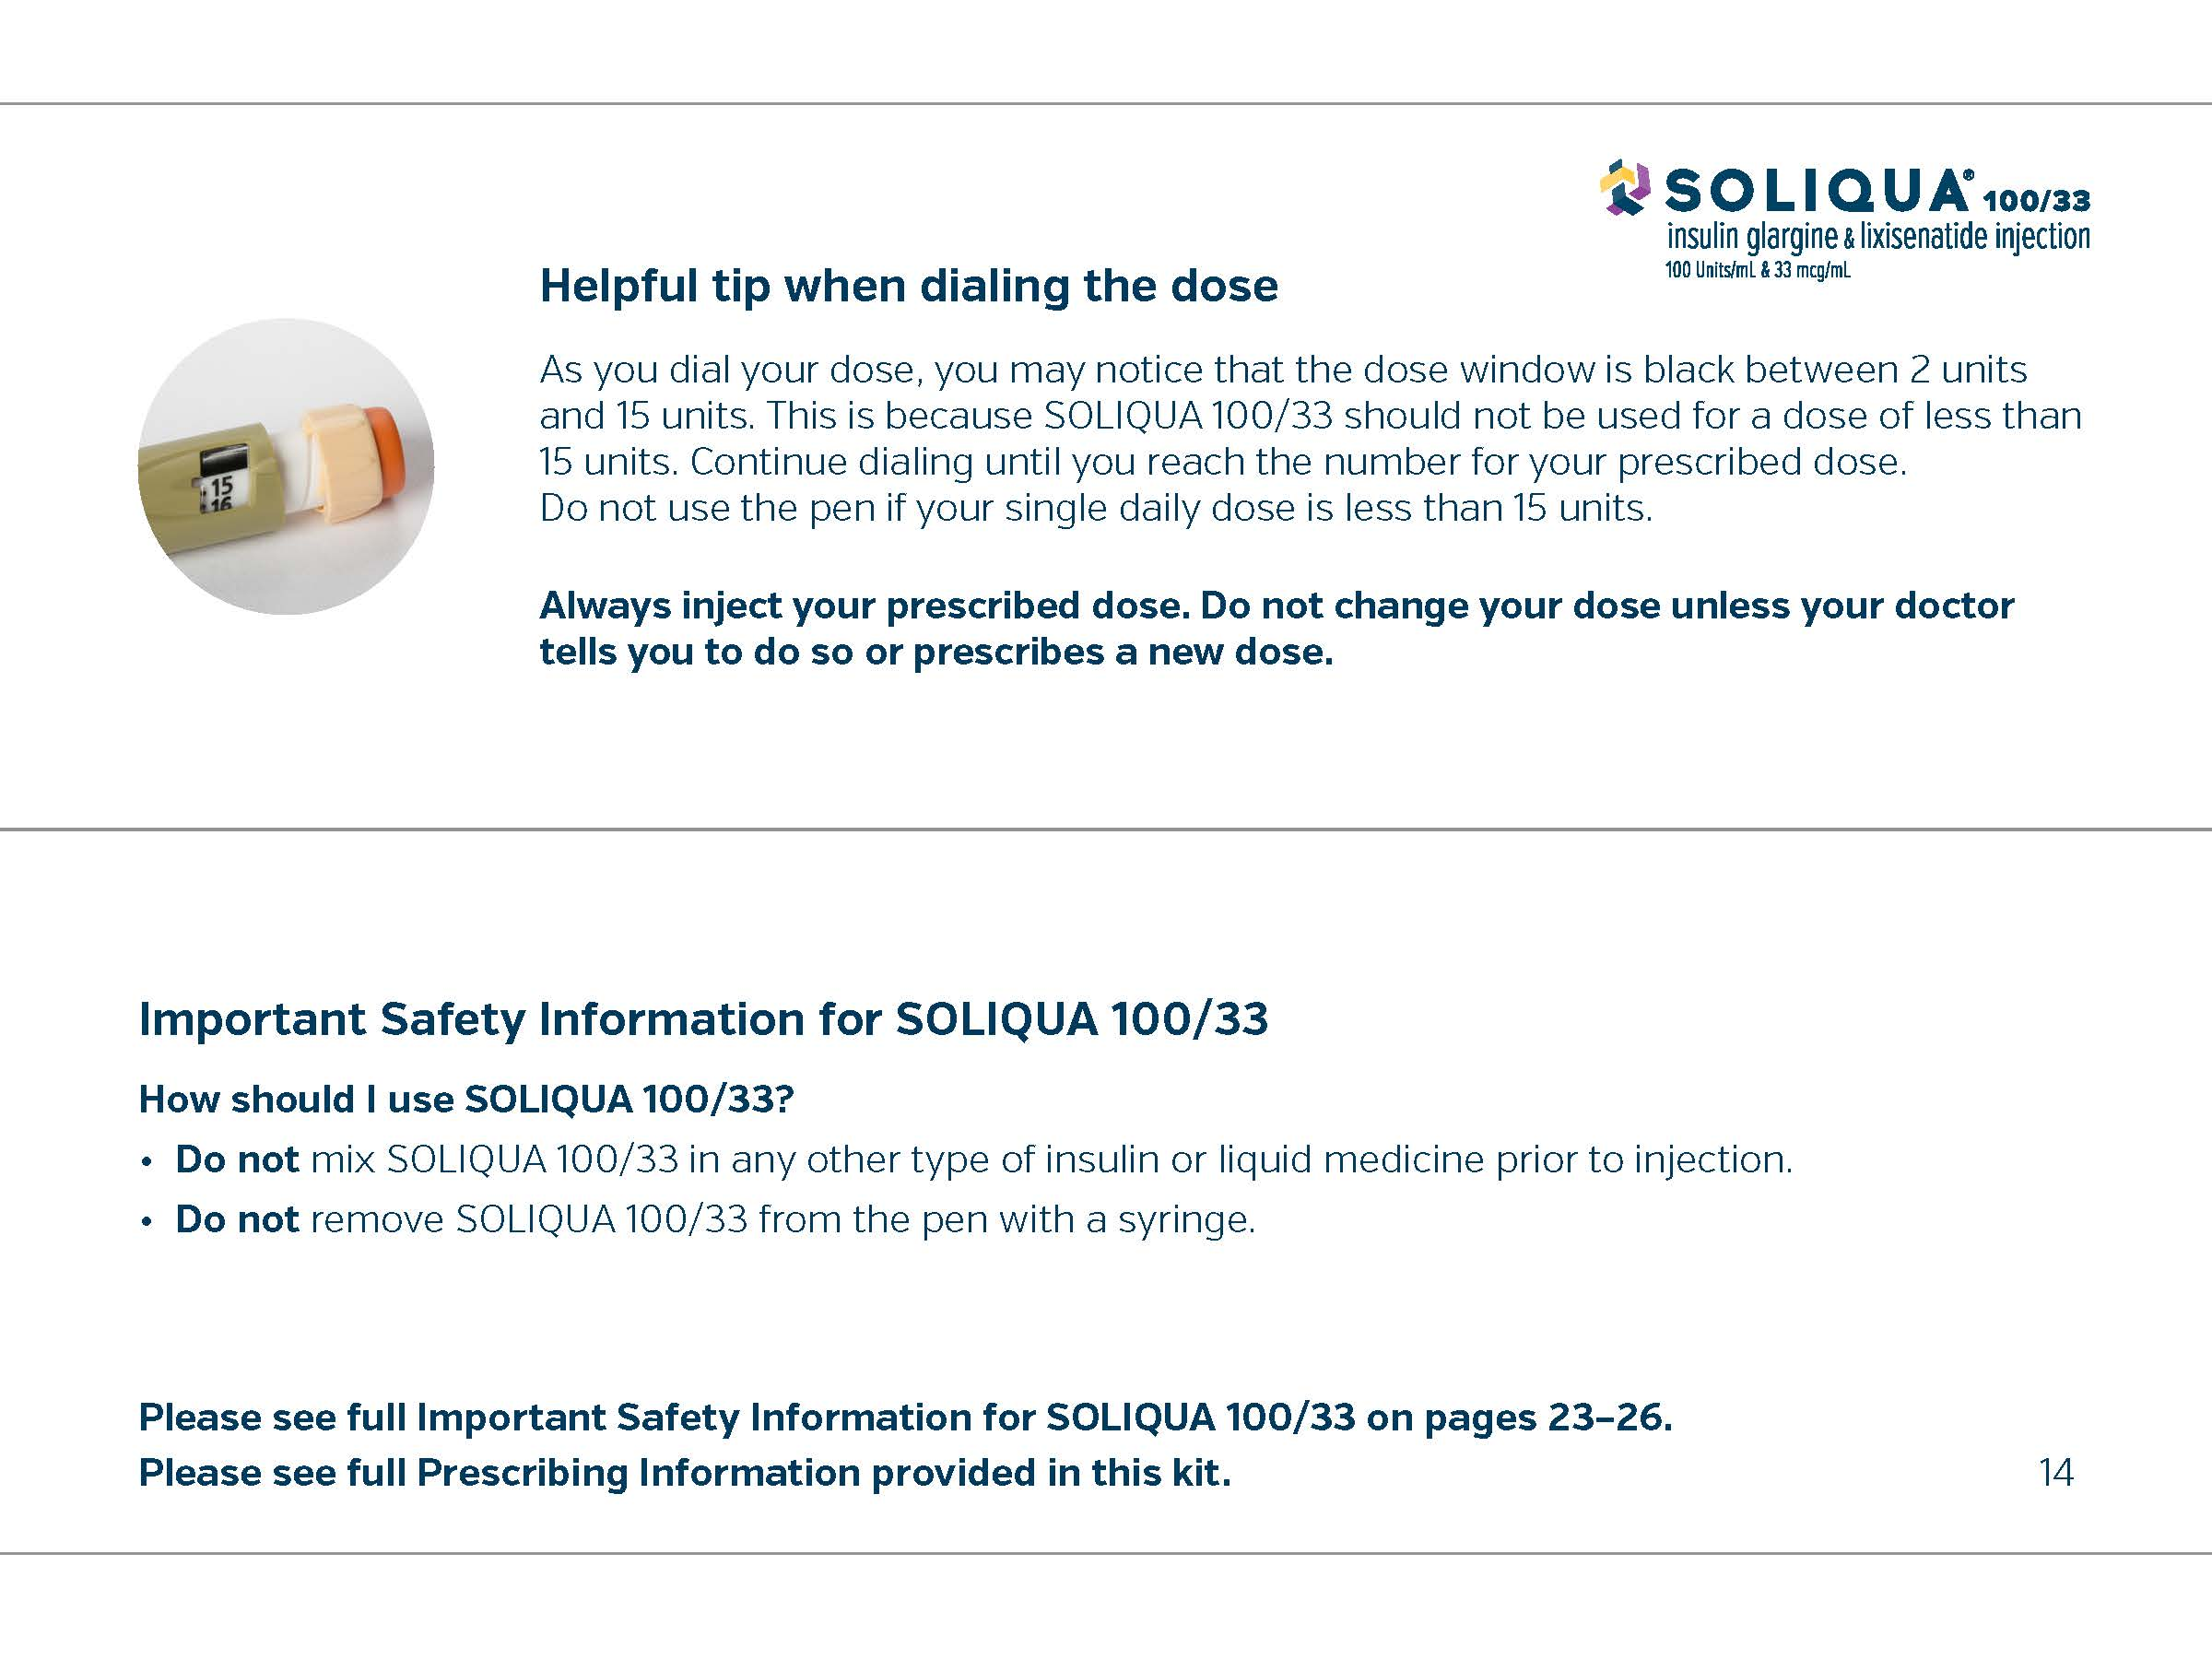 SAUS.SQA.17.04.1224_Starter_Kit_Core_Brochure_v24 copy 2_Page_14.jpg